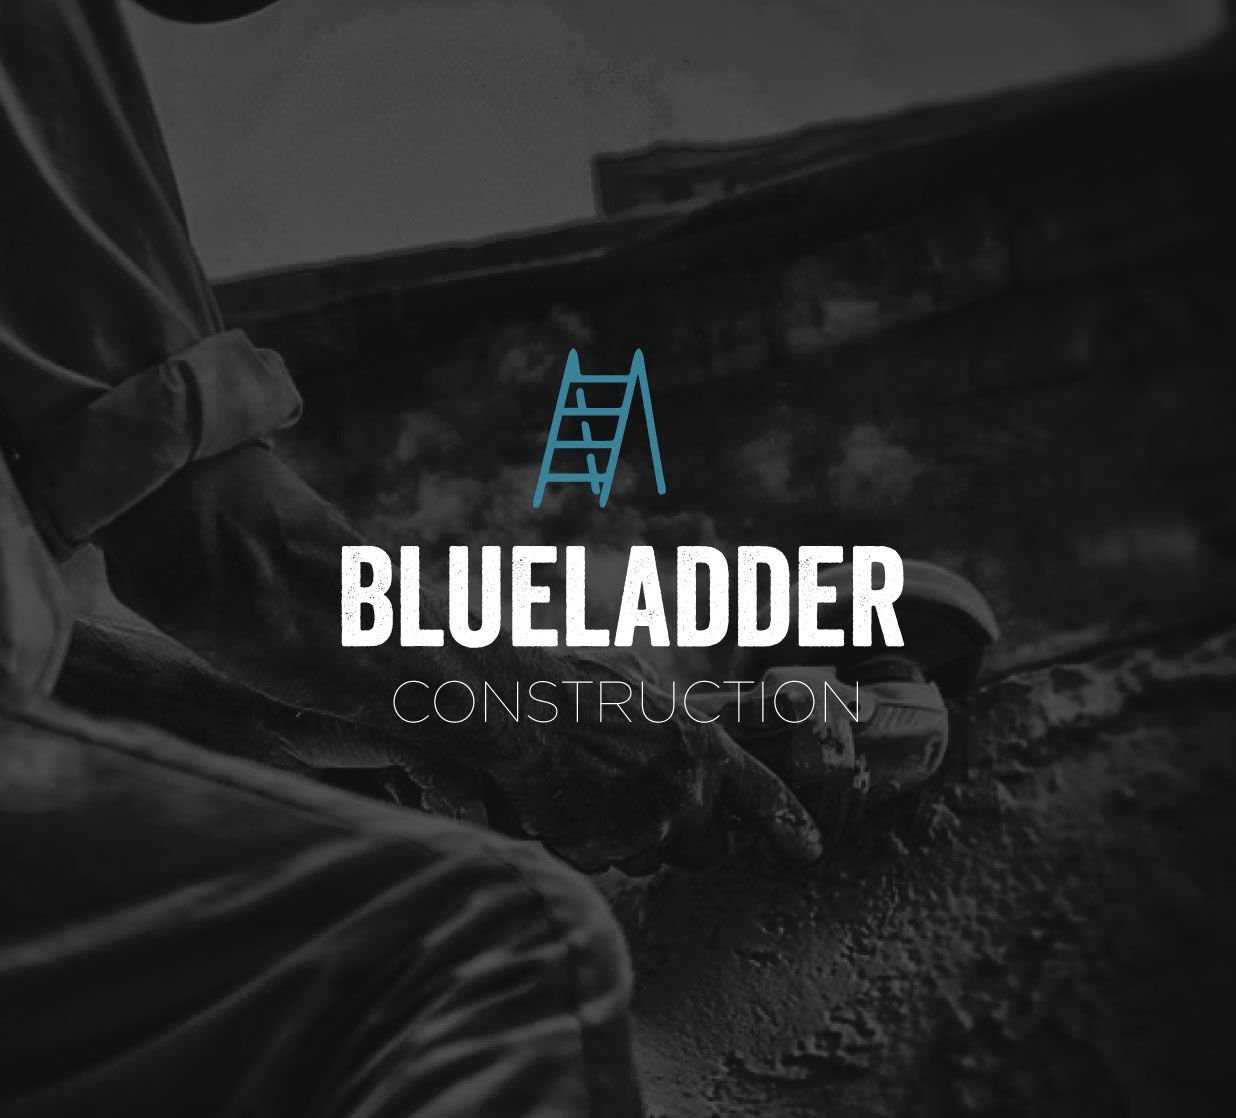 Construction Company Name Ideas   Tim B Design